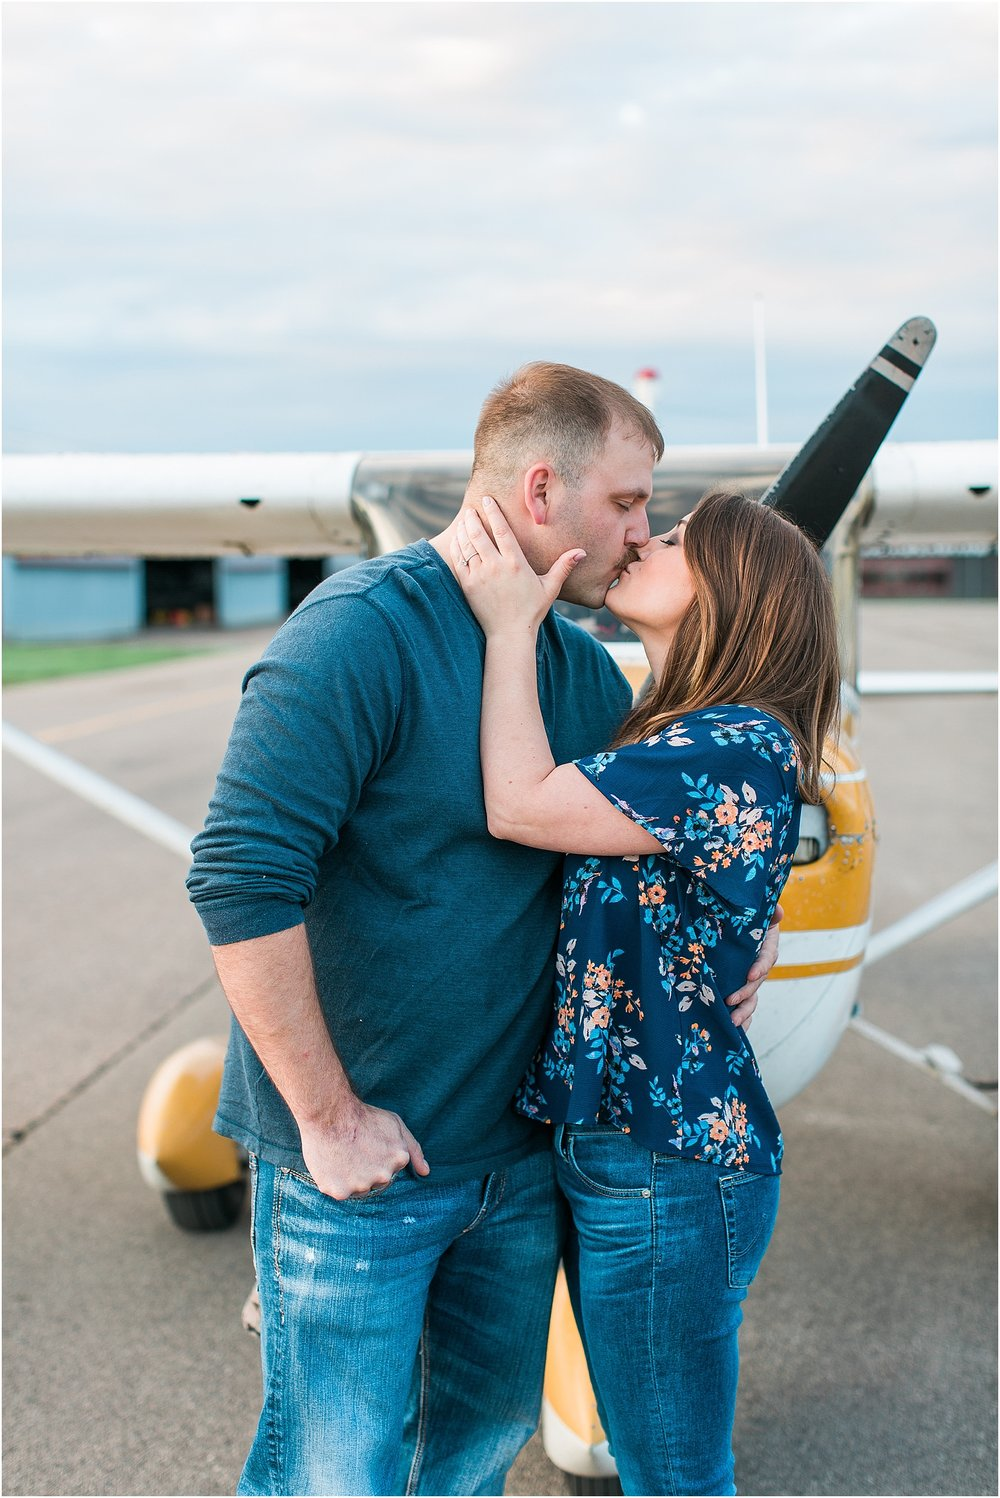 Minneapolis airplane engagement photography session at flying cloud airport in Eden Prairie photographed by Mallory Kiesow Minneapolis engagement and wedding photographer_11.jpg